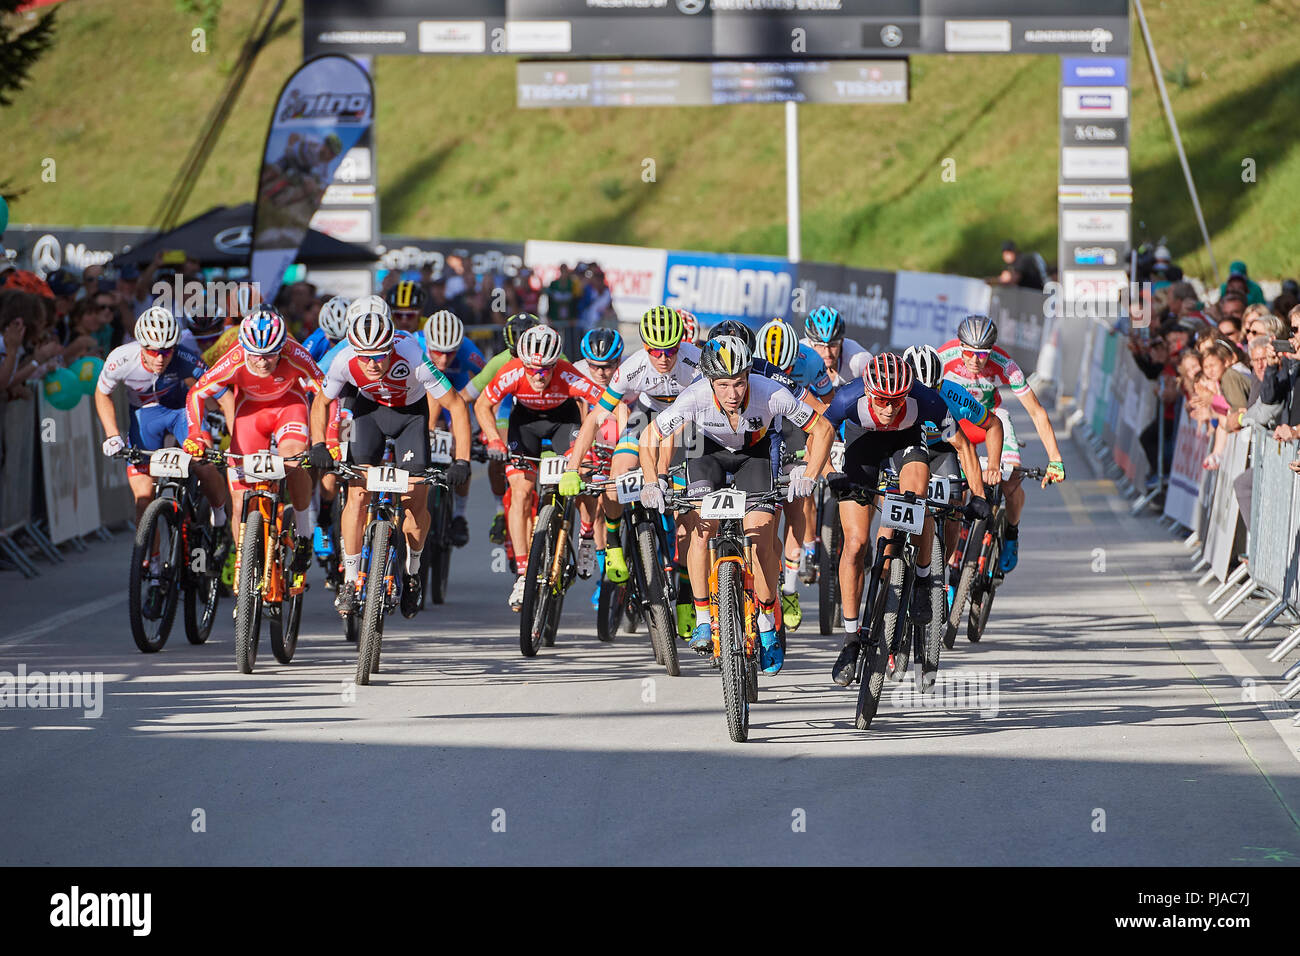 Lenzerheide, Switzerland. 5th September 2018. Start to the UCI 2018 Mountain Bike World Championships Cross Country Team Relay in Lenzerheide. Credit: Rolf Simeon/Alamy Live News - Stock Image